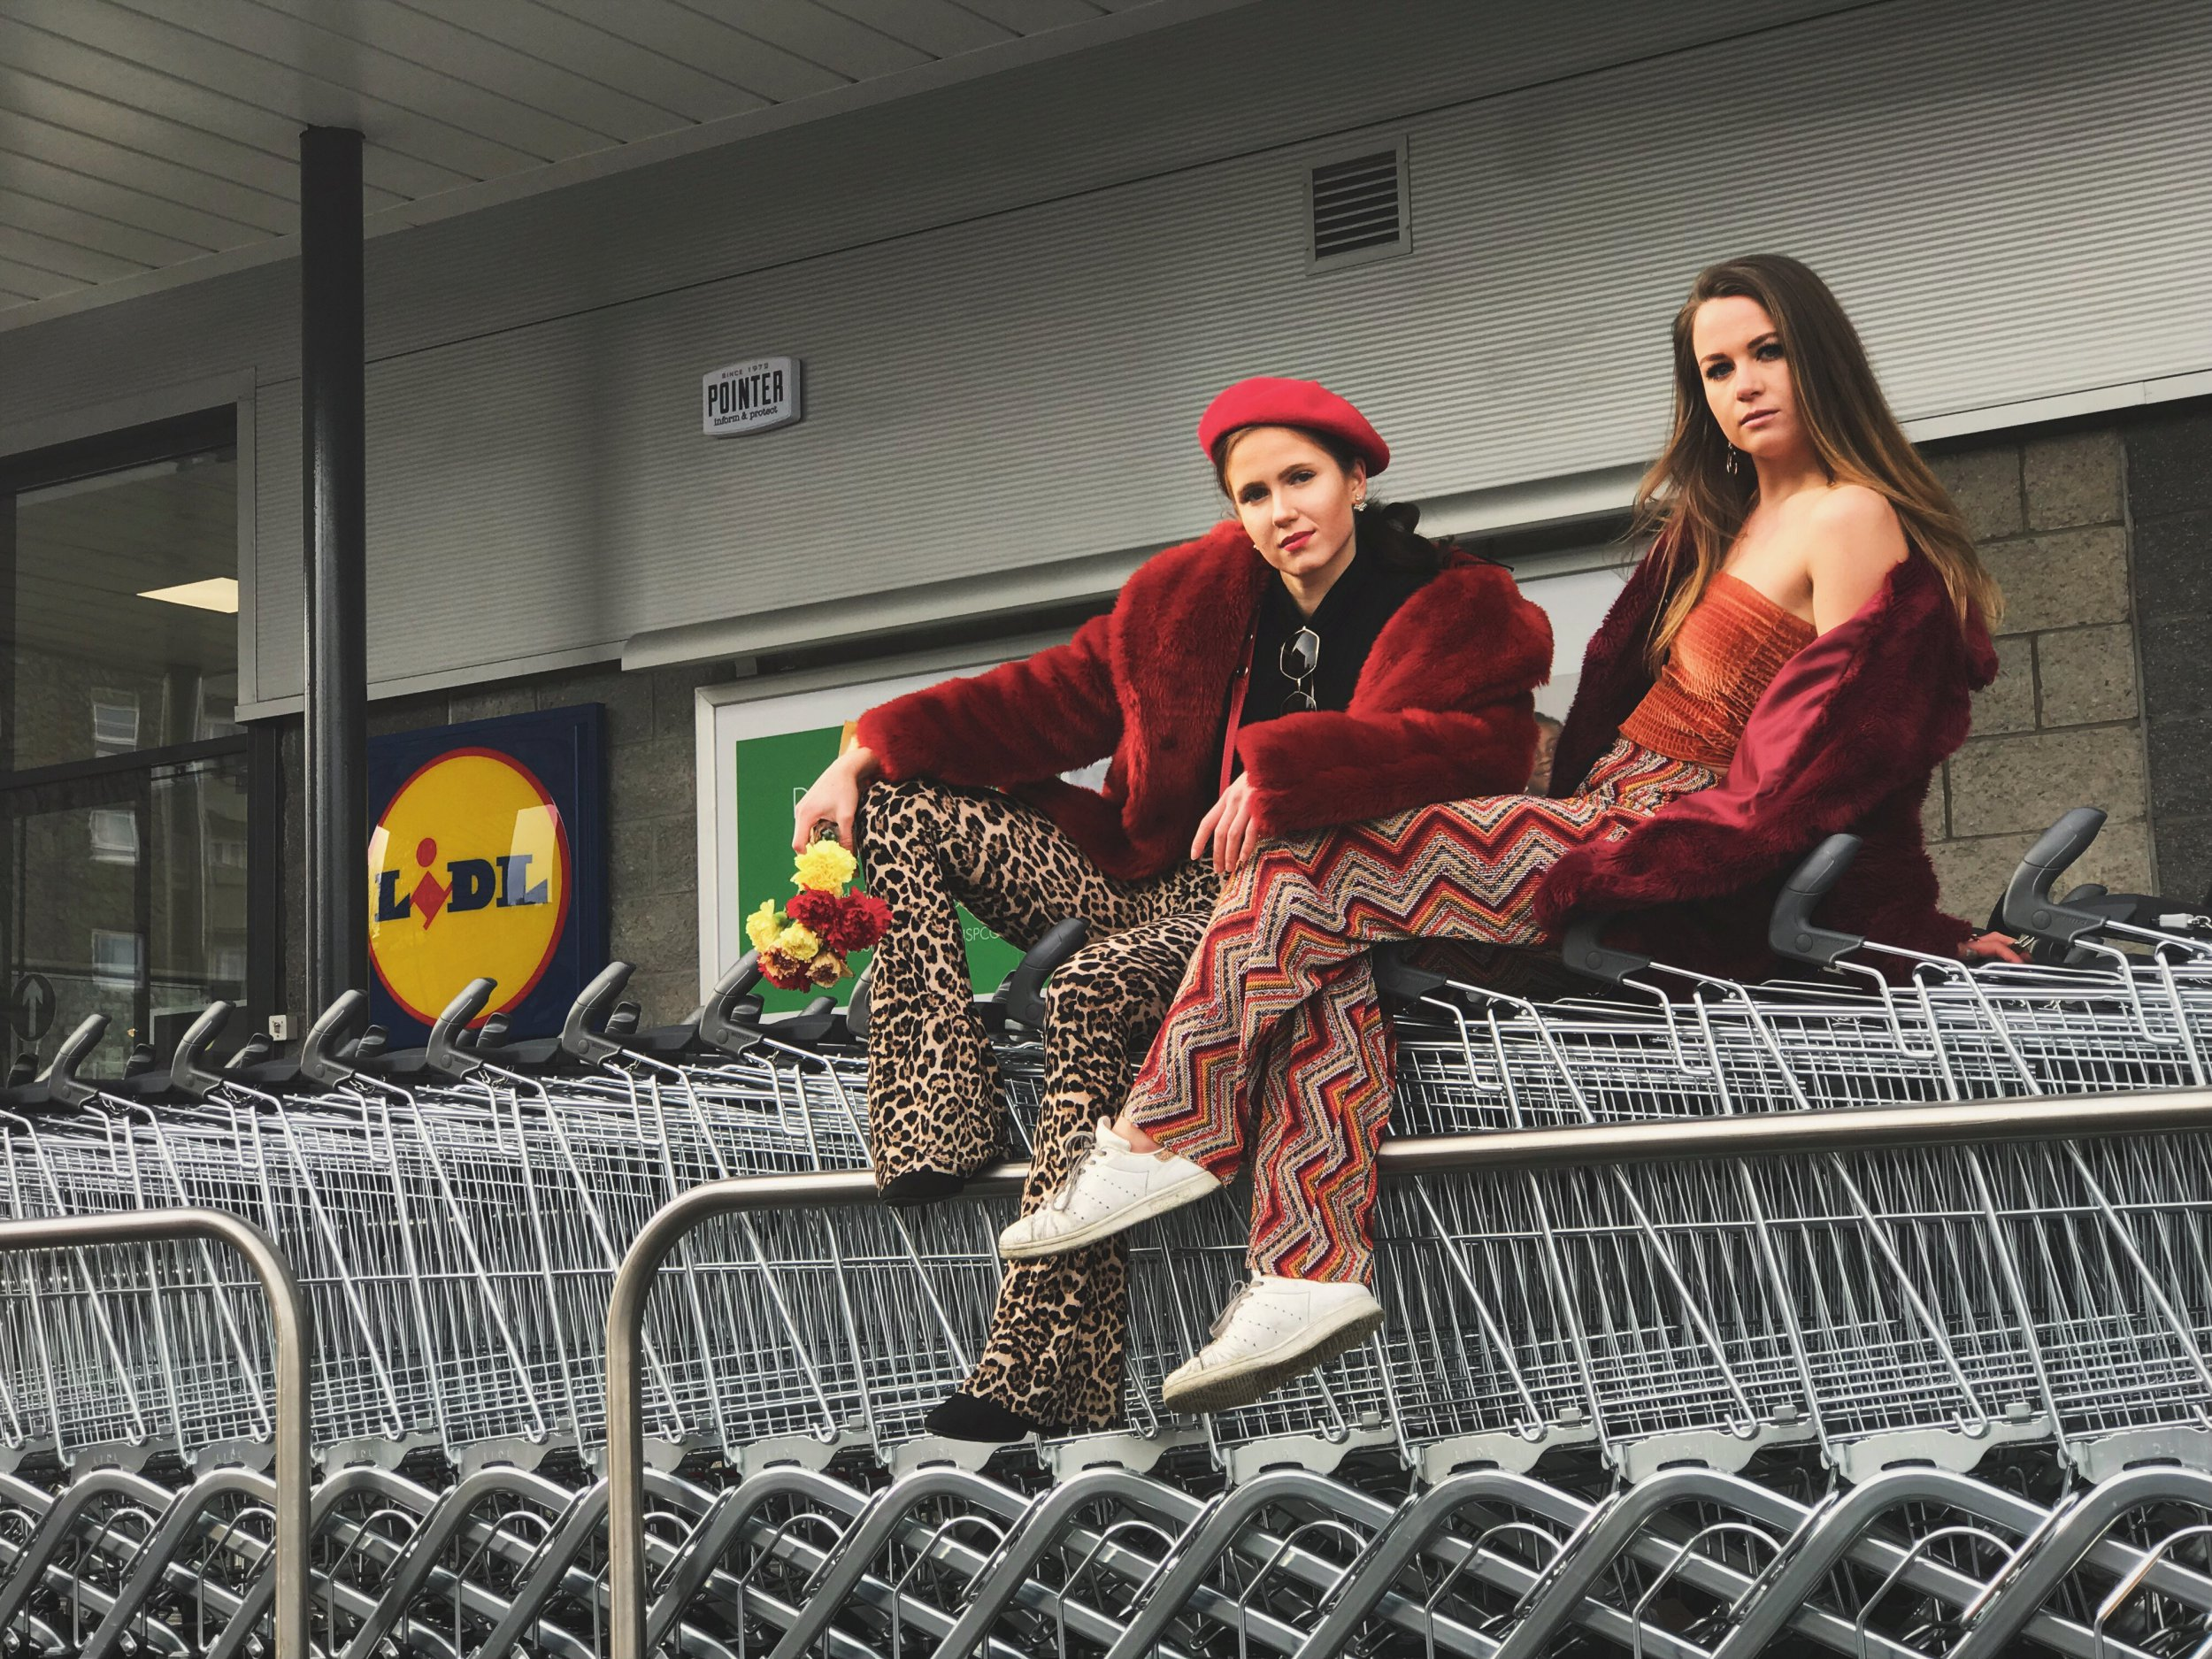 Students create glamorous photoshoot in their local Lidl